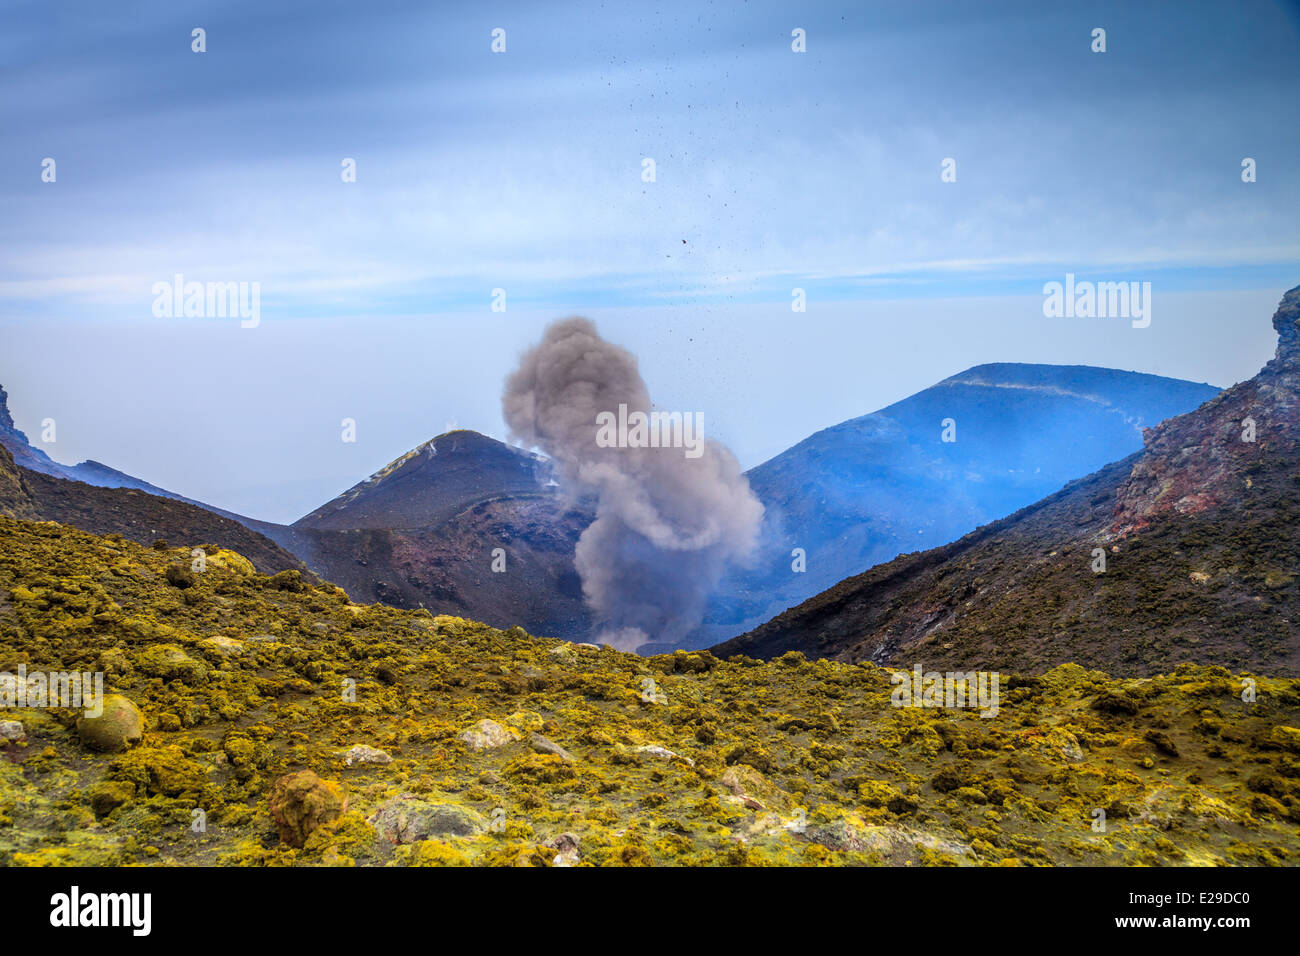 Explosion in summit mouth of mount Etna - Stock Image